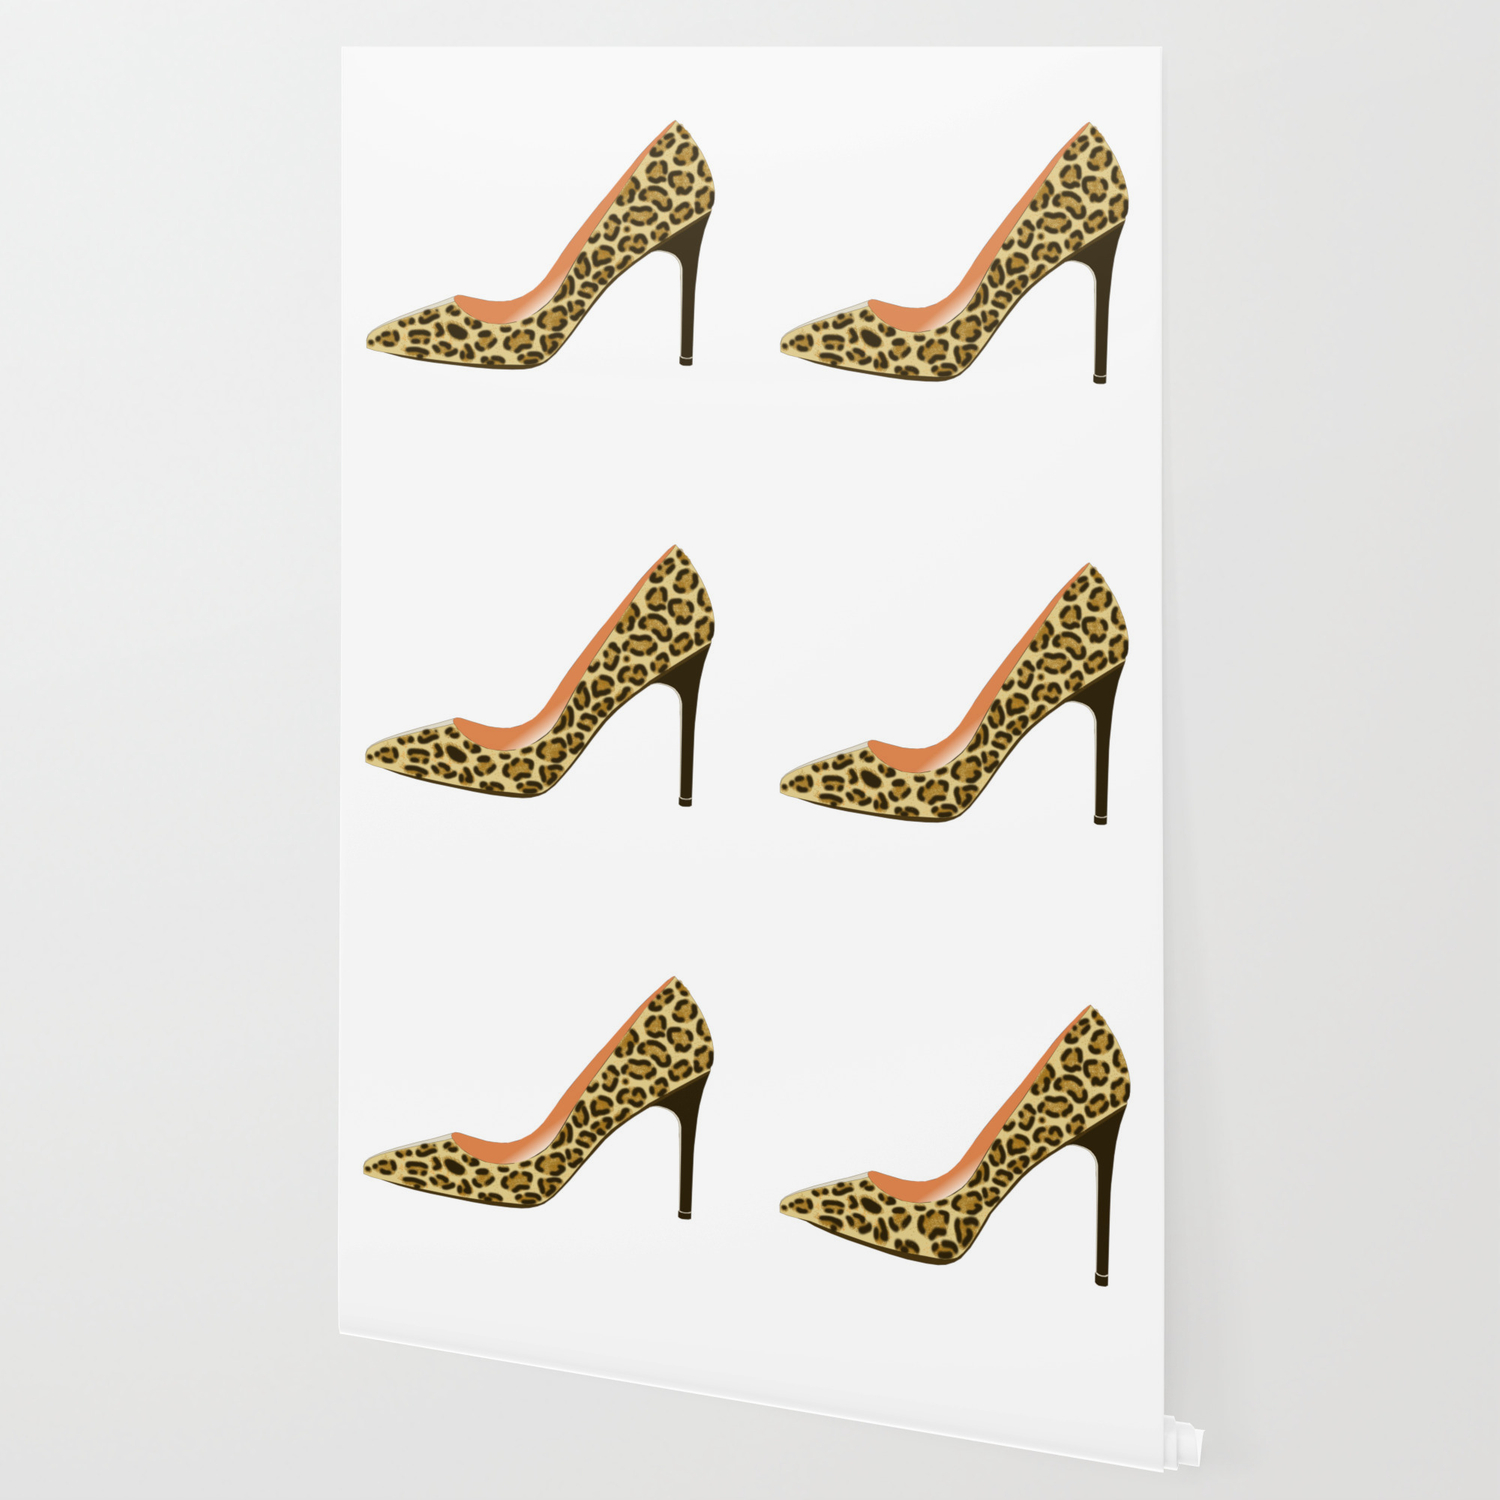 cb56ef2139d Leopard Print High Heel Shoe Wallpaper